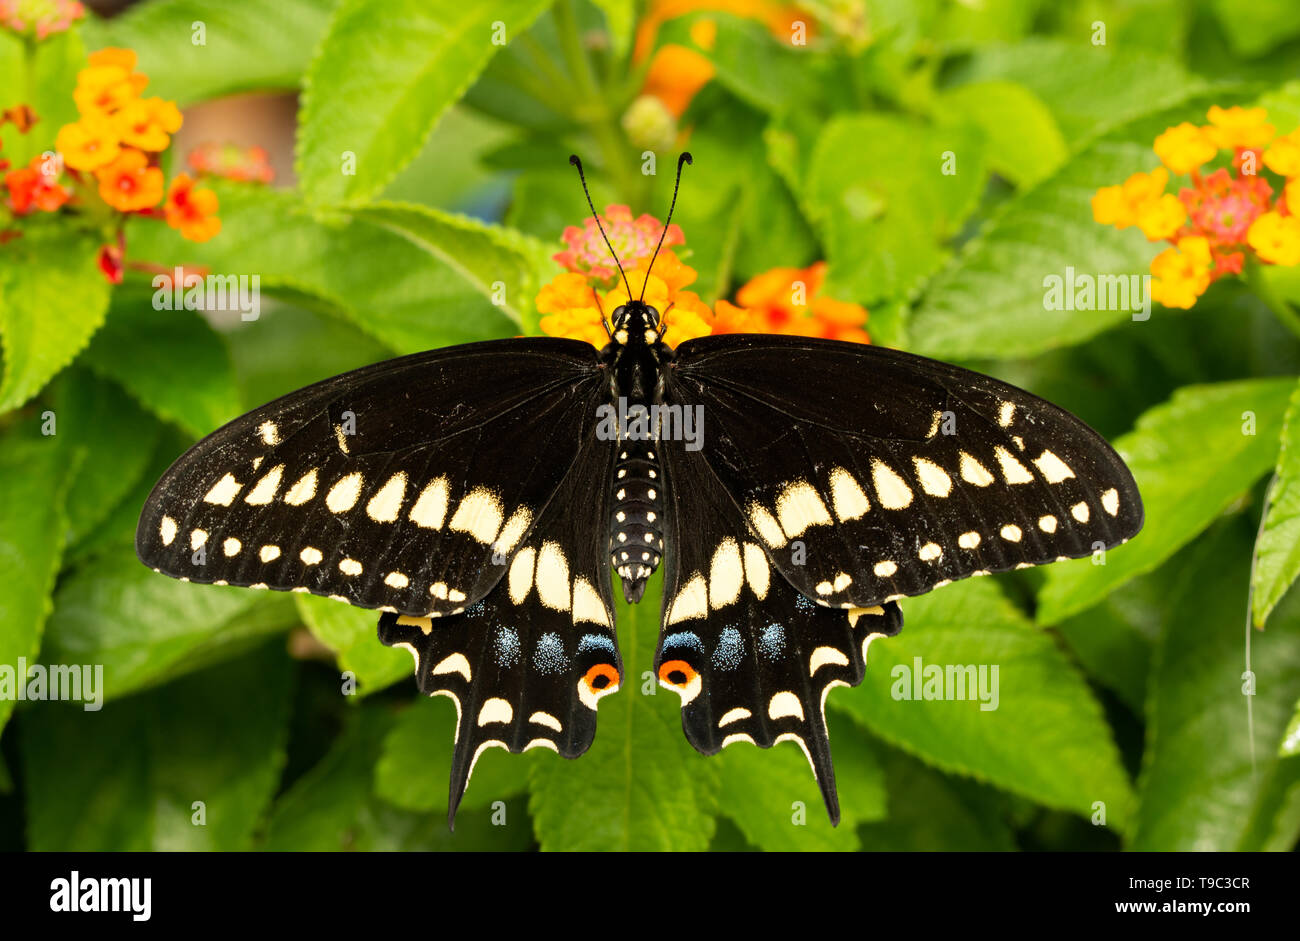 Dorsal view of a Eastern Black Swallowtail butterfly feeding on a Lantana flower - Stock Image